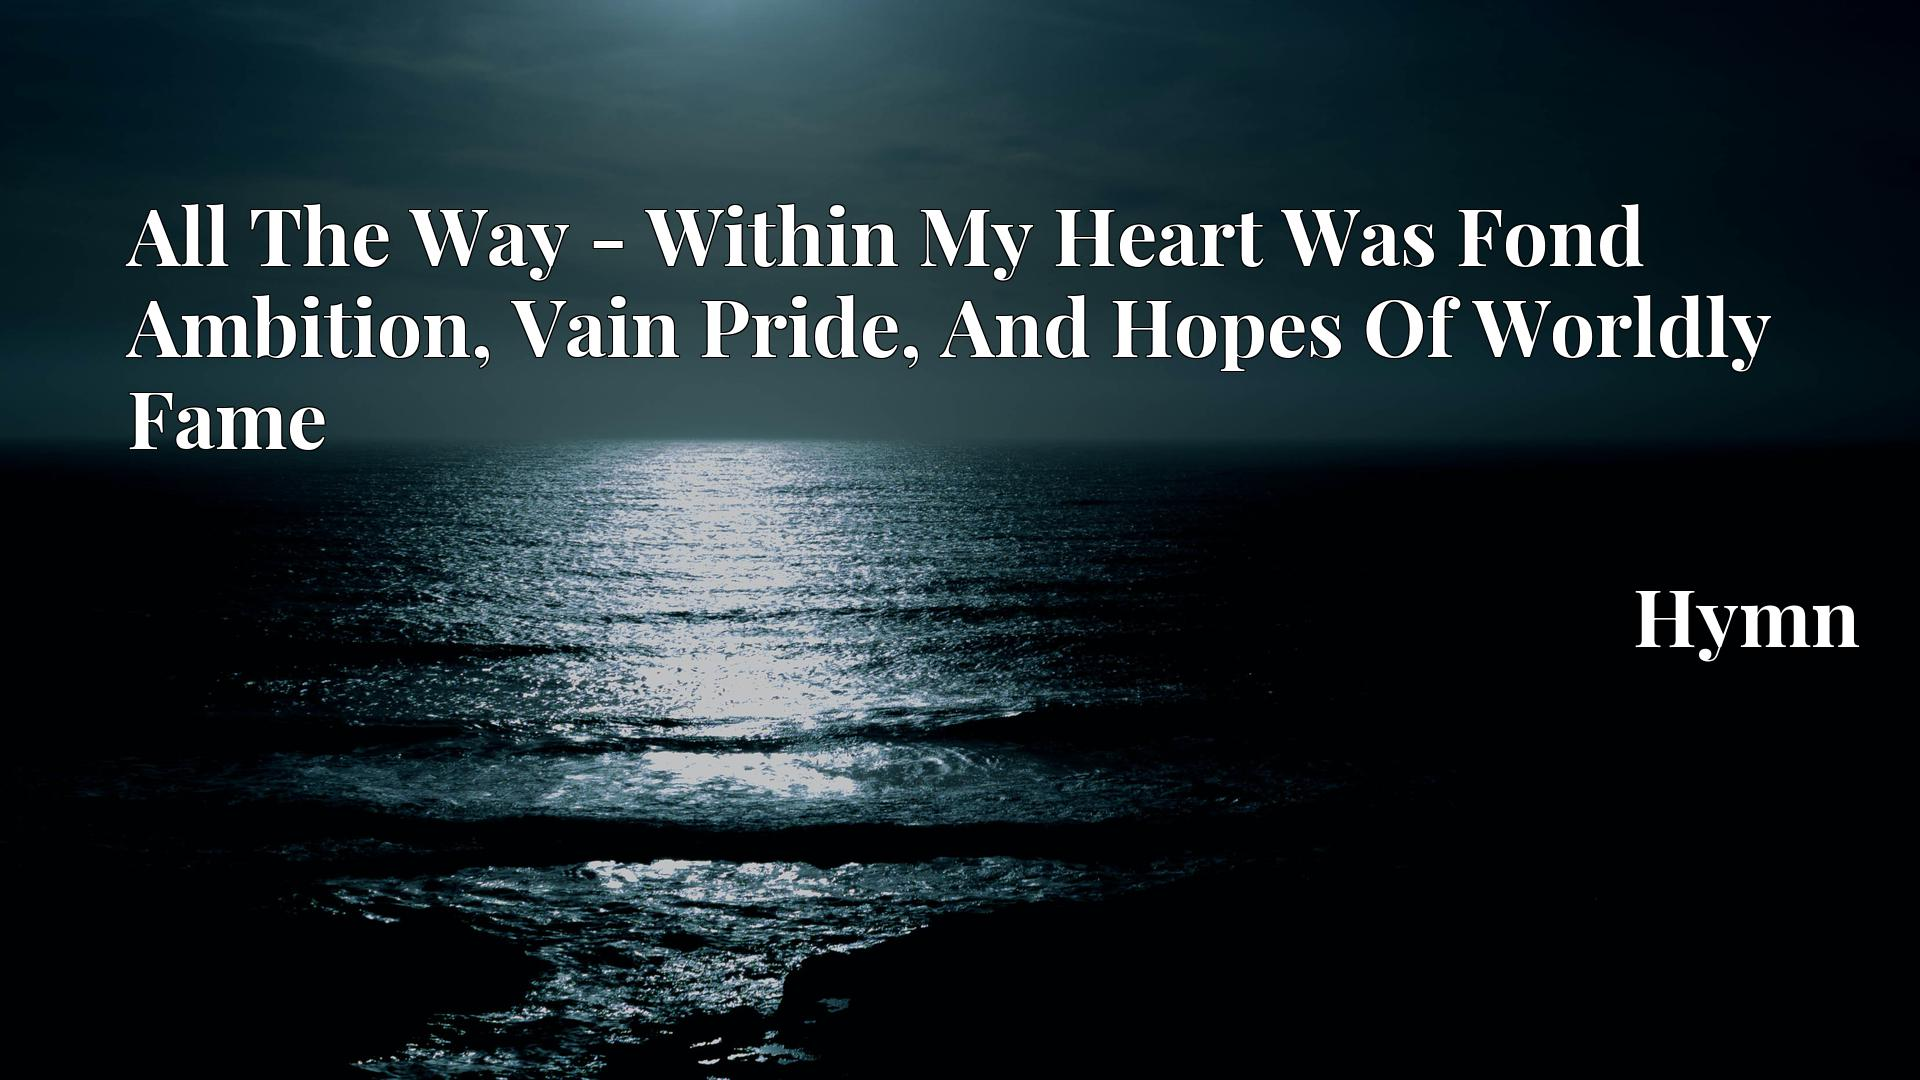 All The Way - Within My Heart Was Fond Ambition, Vain Pride, And Hopes Of Worldly Fame - Hymn